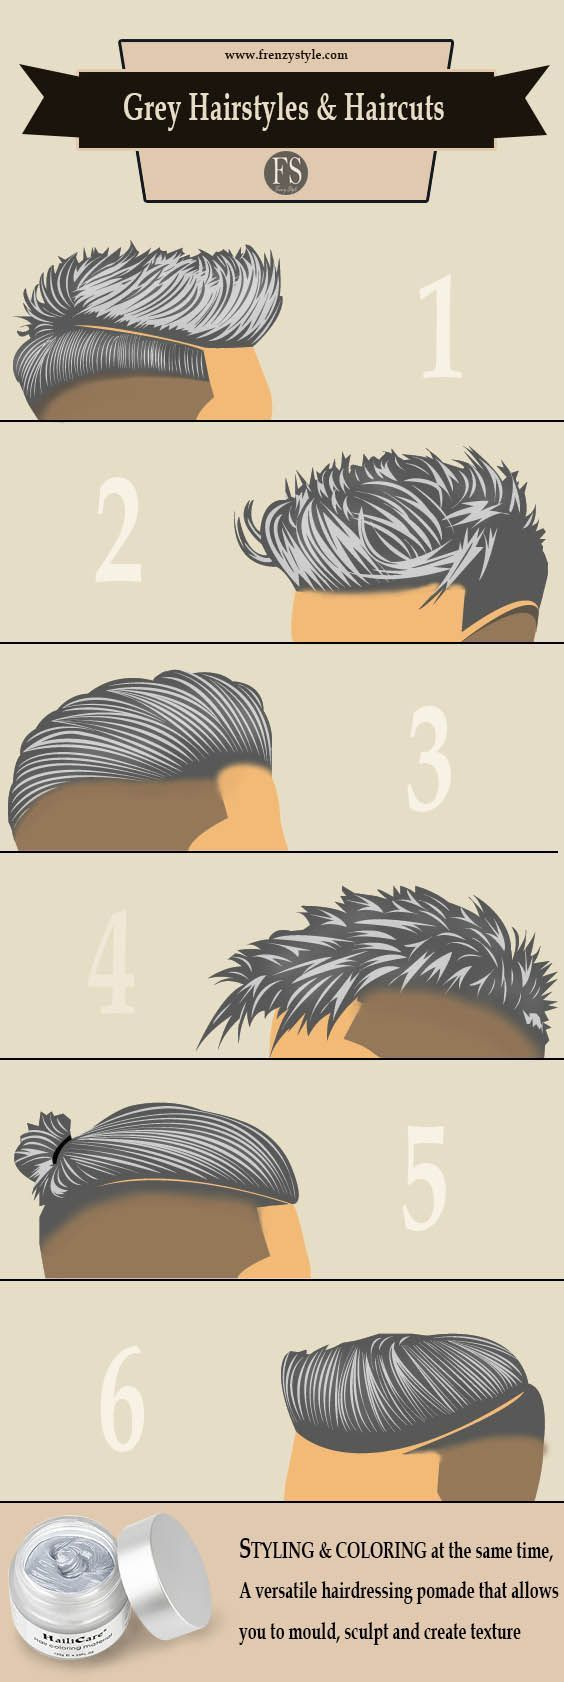 Mens haircut line grey men hairstyles u haircuts u hairdressing pomade u styling and